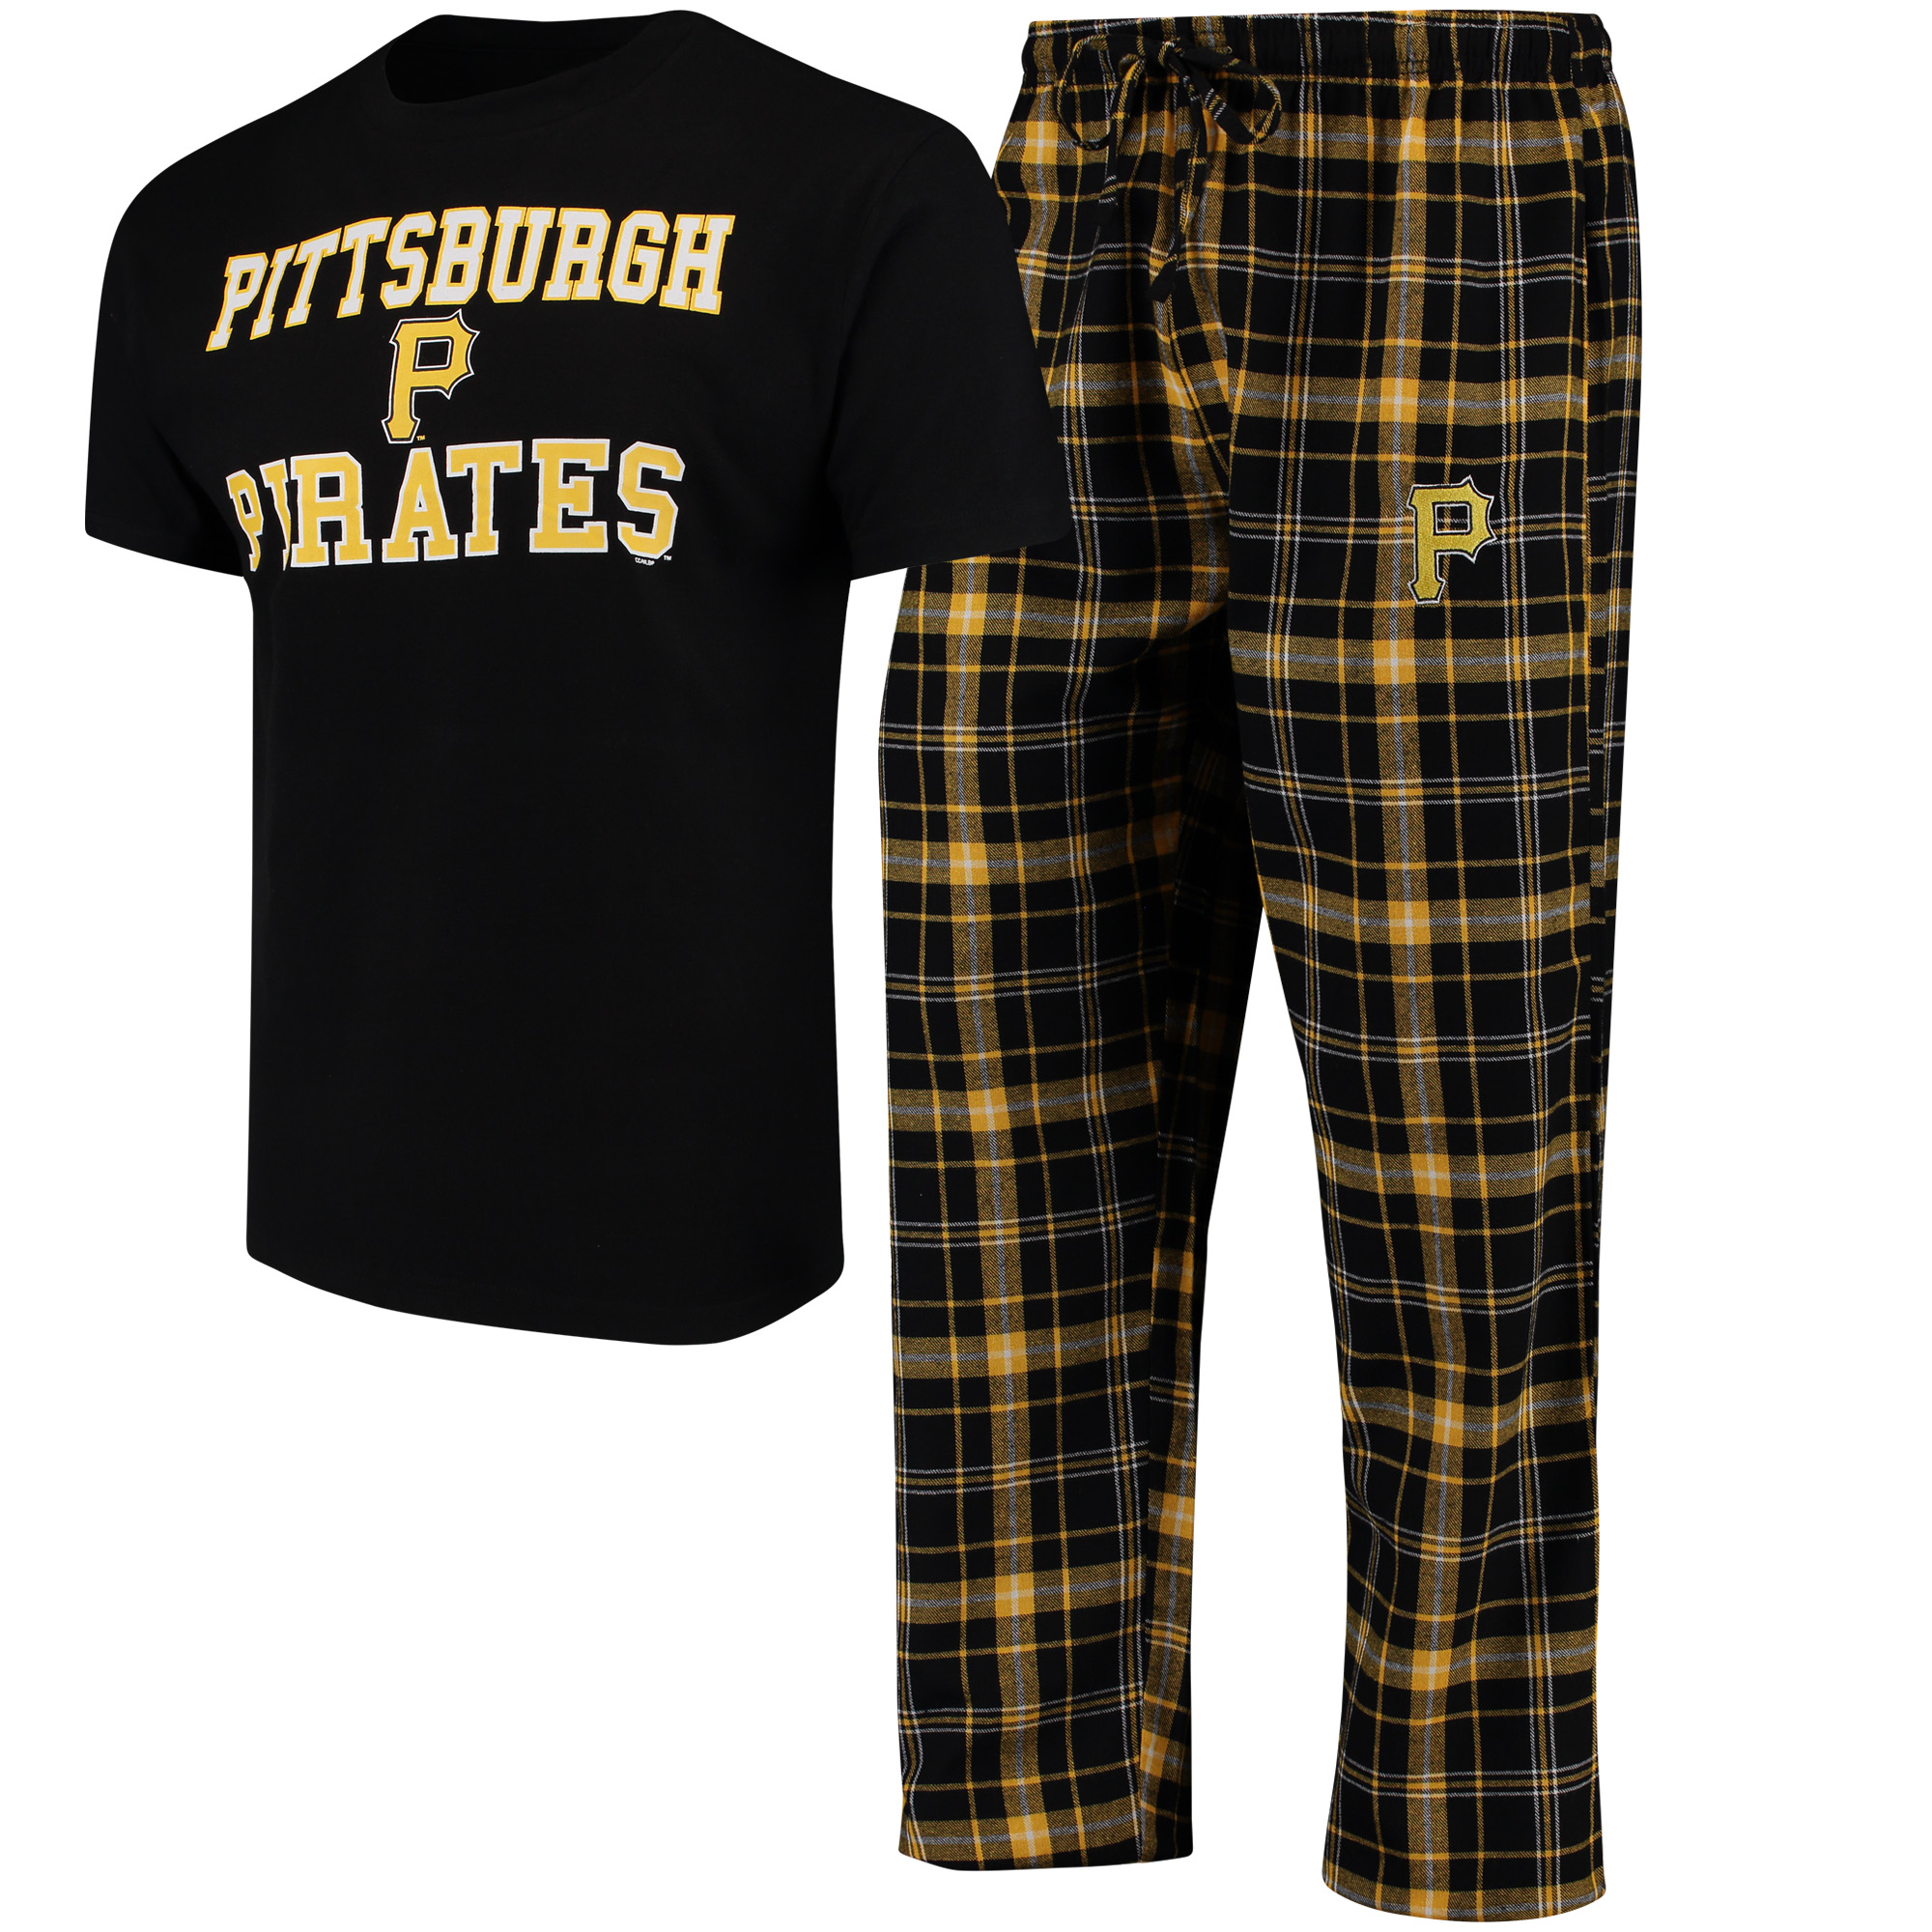 Pittsburgh Pirates Concepts Sport Halftime Pants and T-Shirt Set - Black/Gold